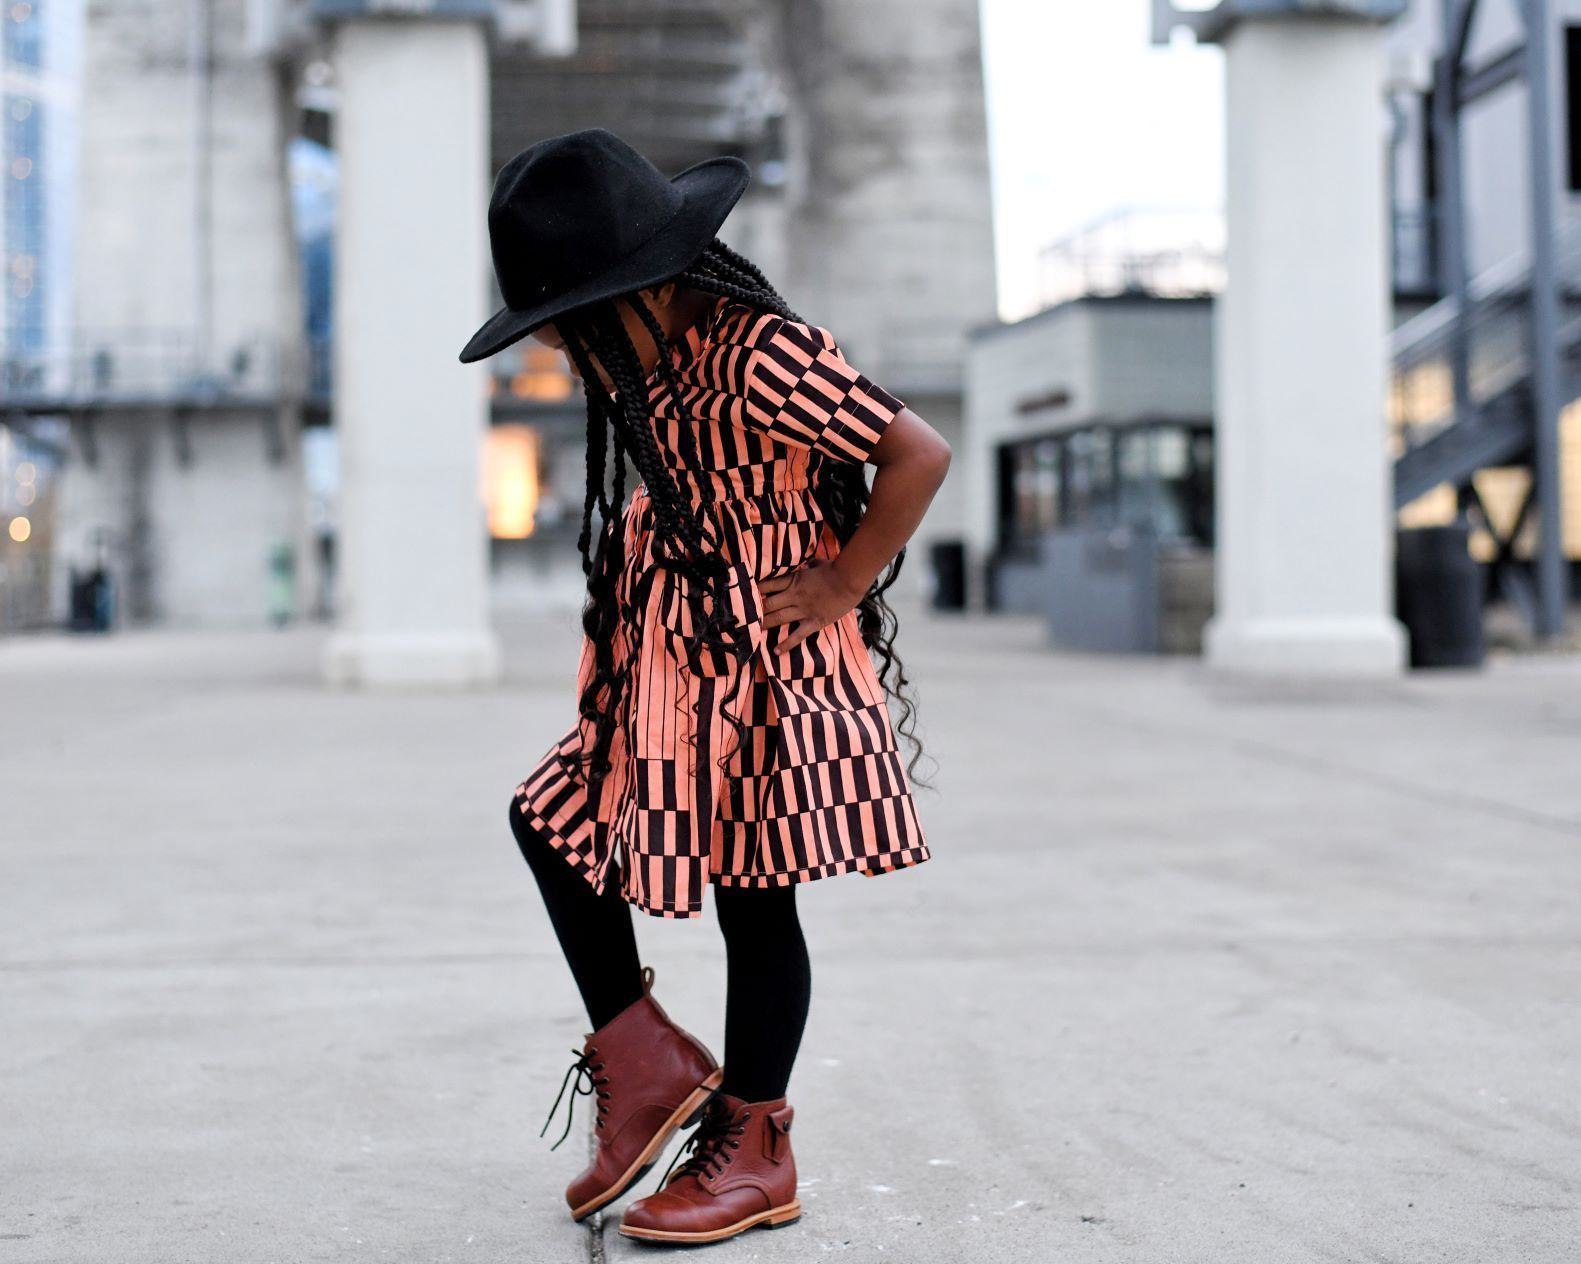 Kemi Dress - Salmon, Black Geometric Pattern-Elisamama